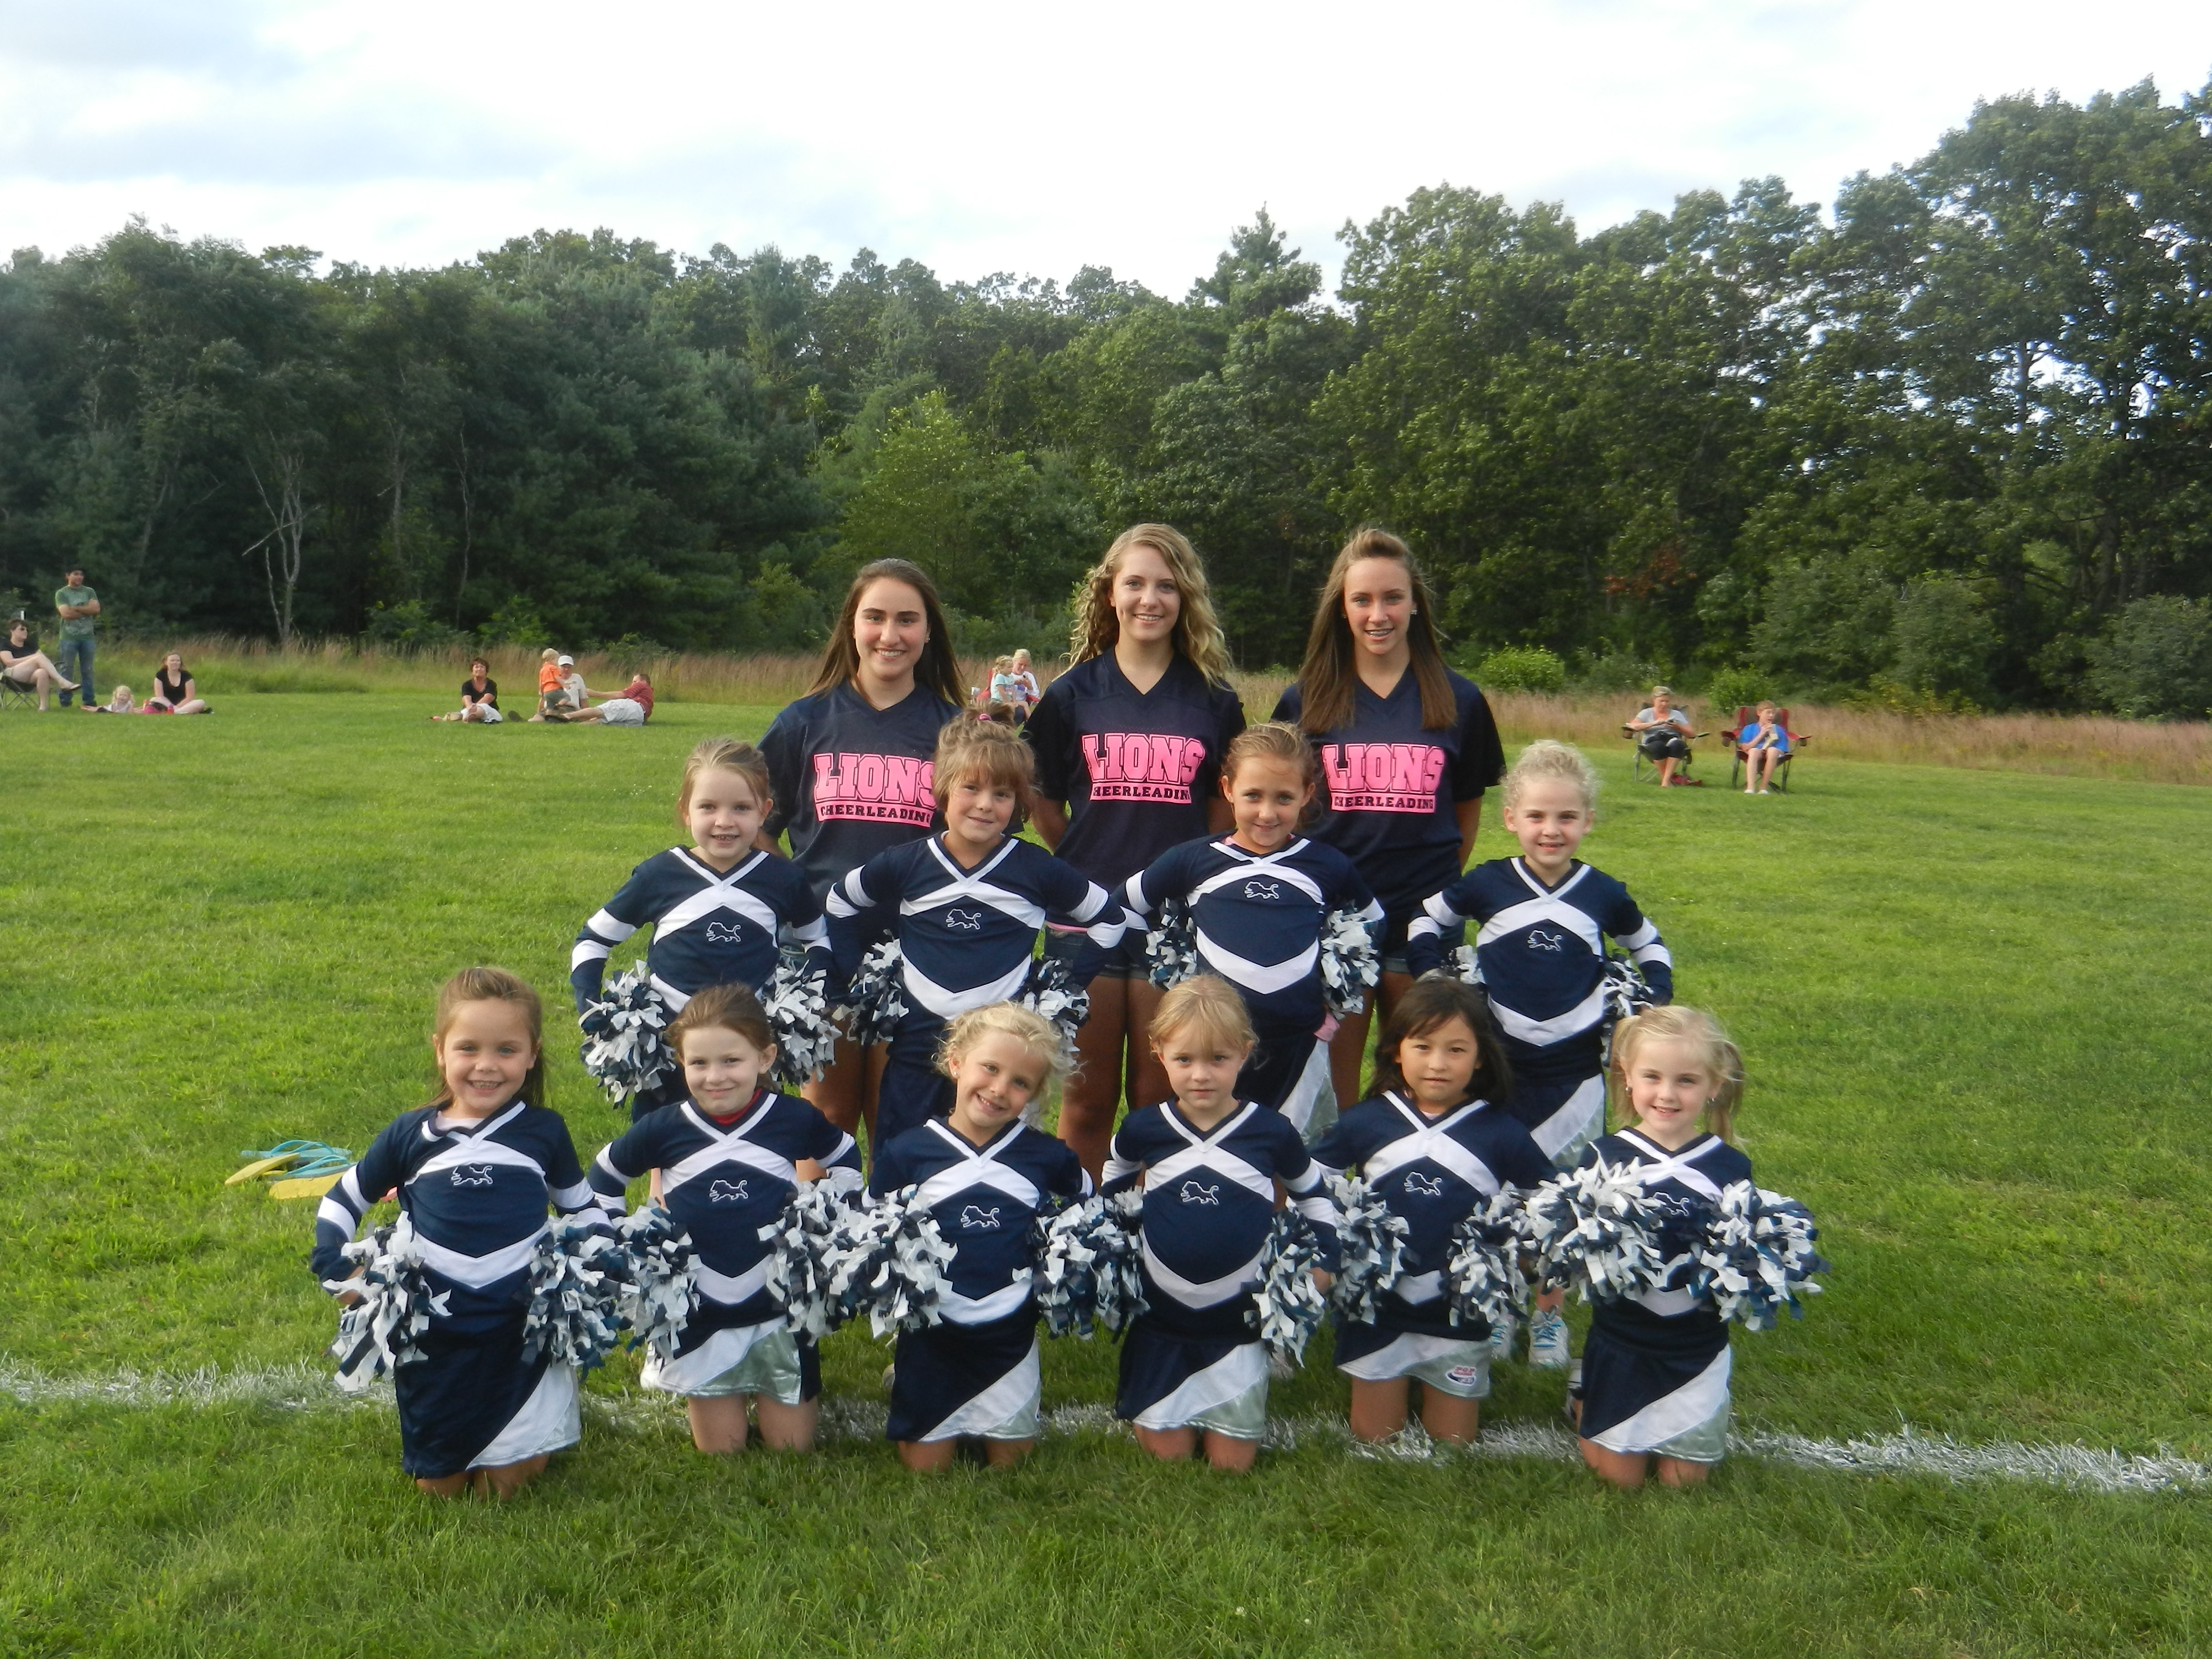 Midget football cheerleading